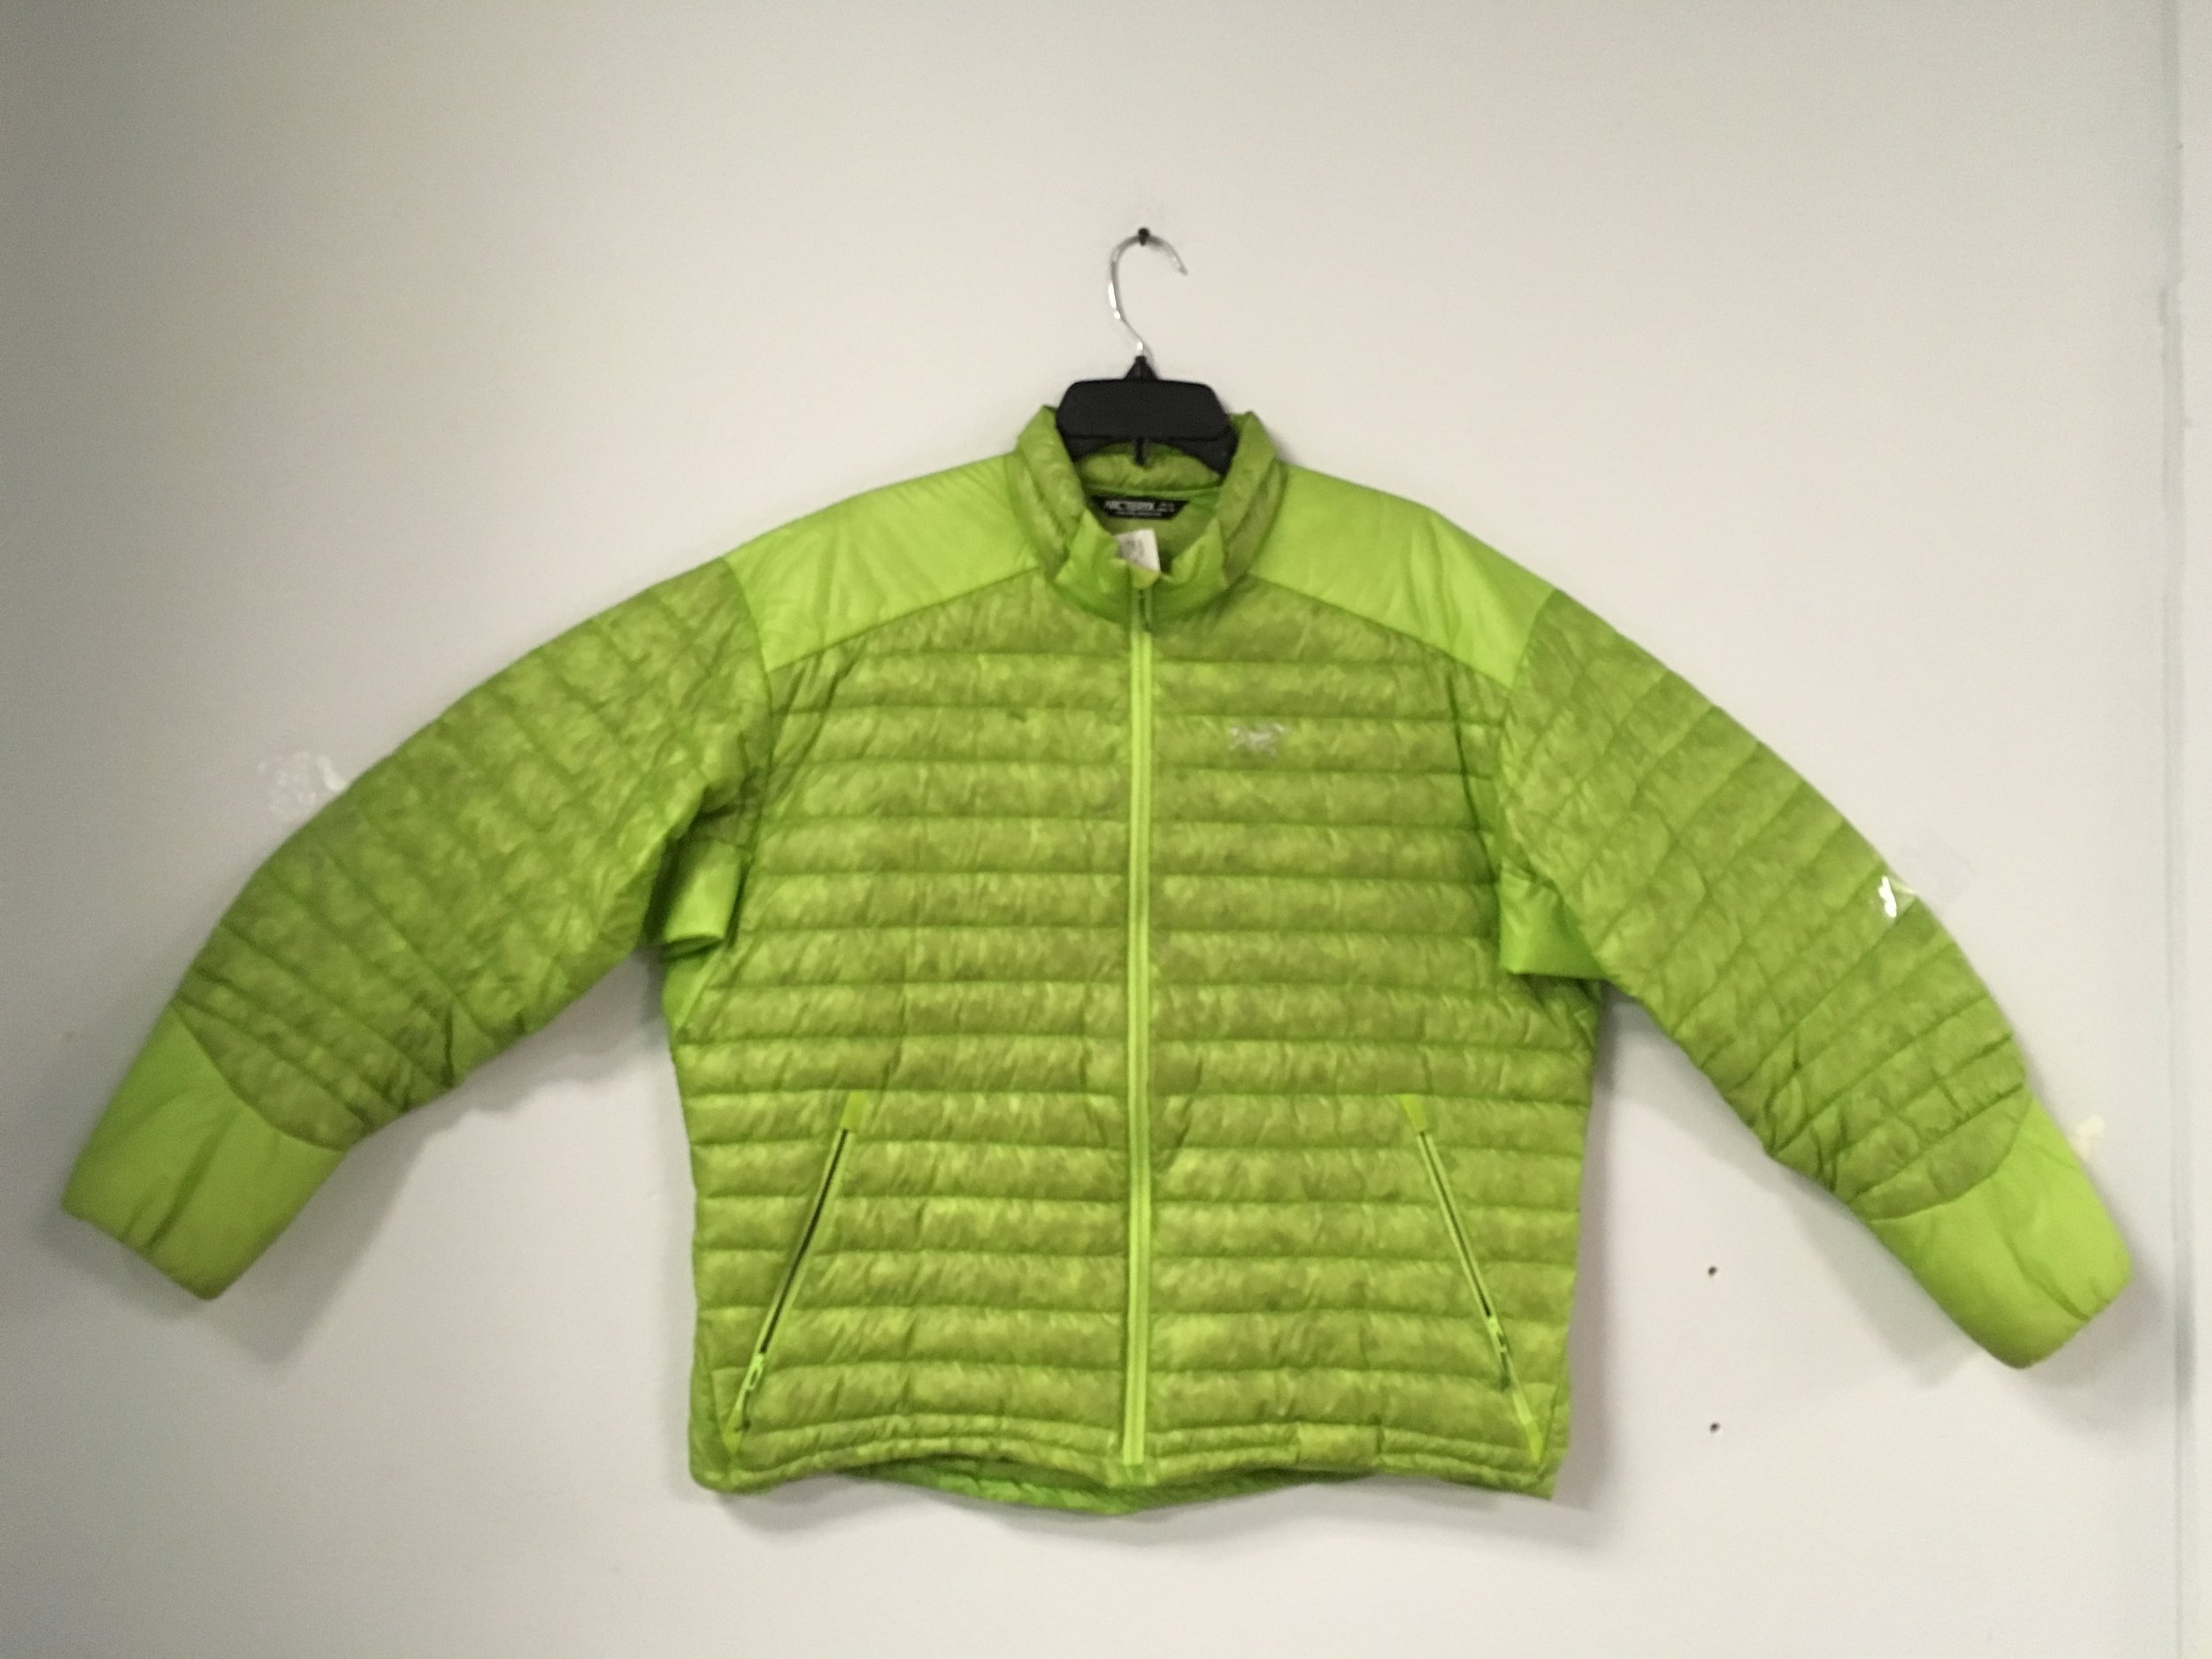 Step your mid-layer game up with the Cerium SL from Arcteryx! Offering the best ratio between warmth and weight by using 100% down insulation this jacket will keep you warm on the coldest of days! Retail for the Cerium is listed at $329 but we got you covered at $149. The size is a men's XL.